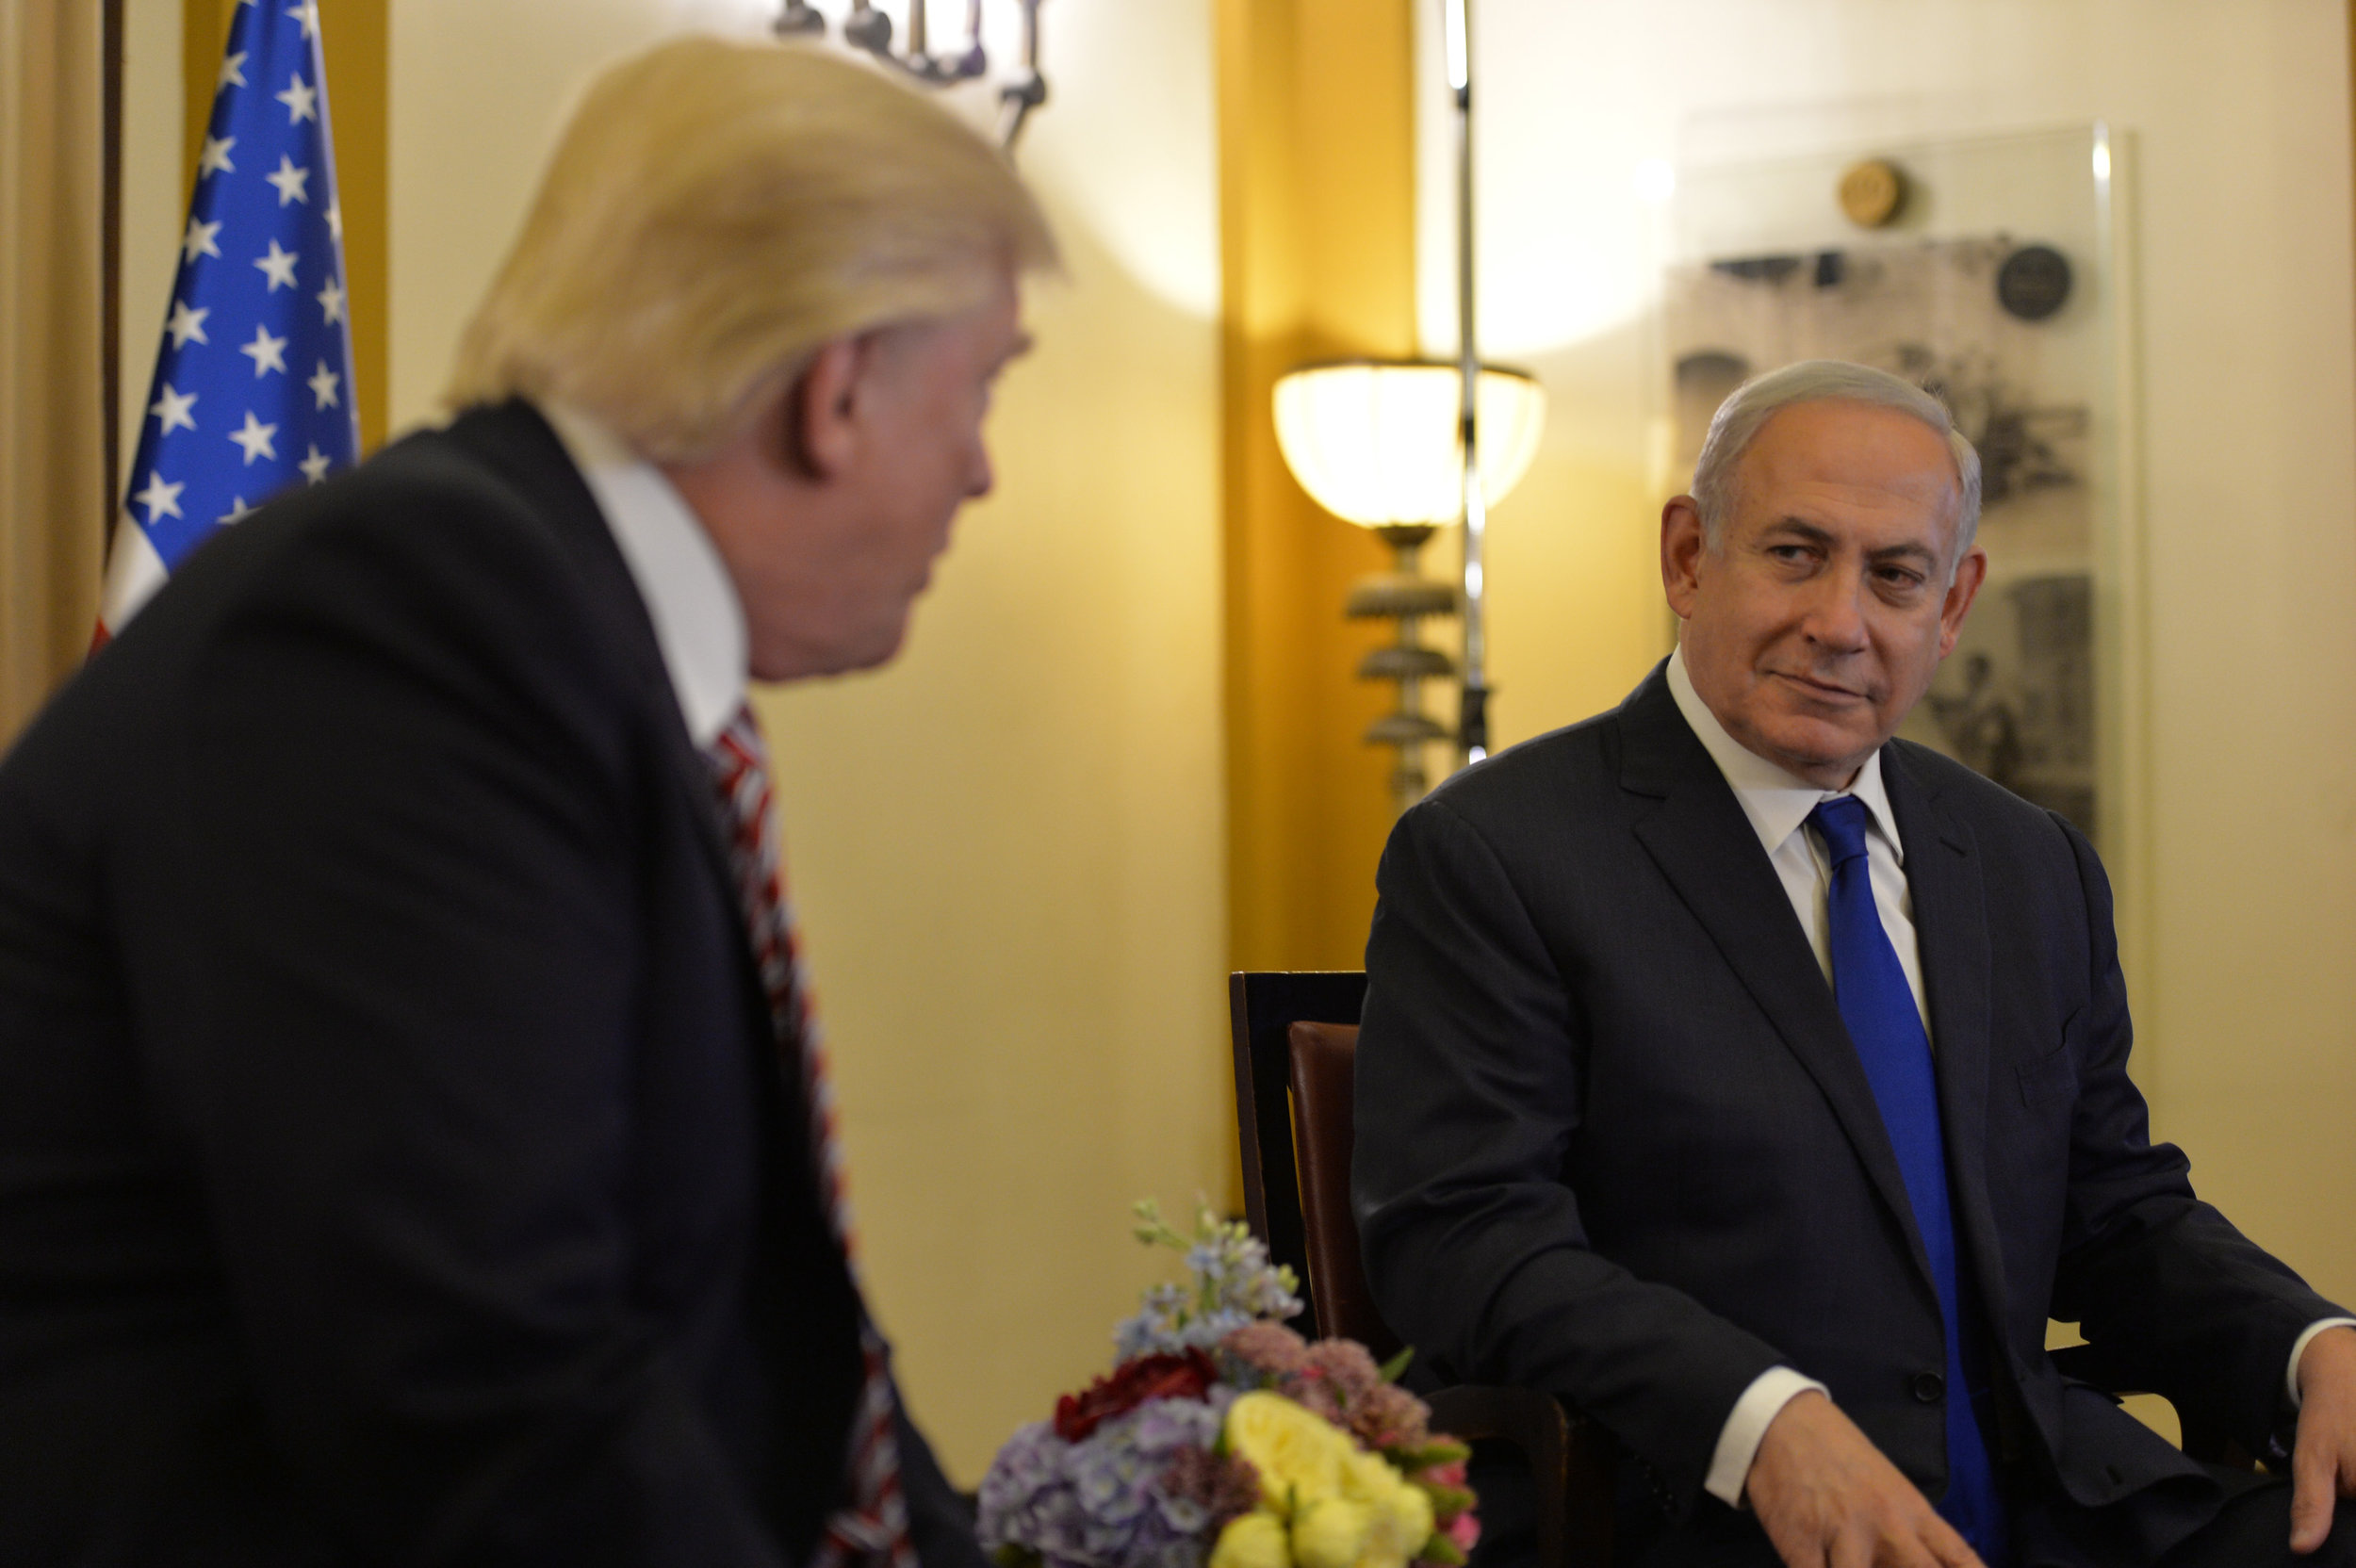 Benjamin Netanyahu and U.S. President Donald Trump are seen during their meeting at the King David hotel in Jerusalem, May 22, 2017. [PHOTO:  Israeli Ministry of Foreign Affairs  VIA FLICKR]